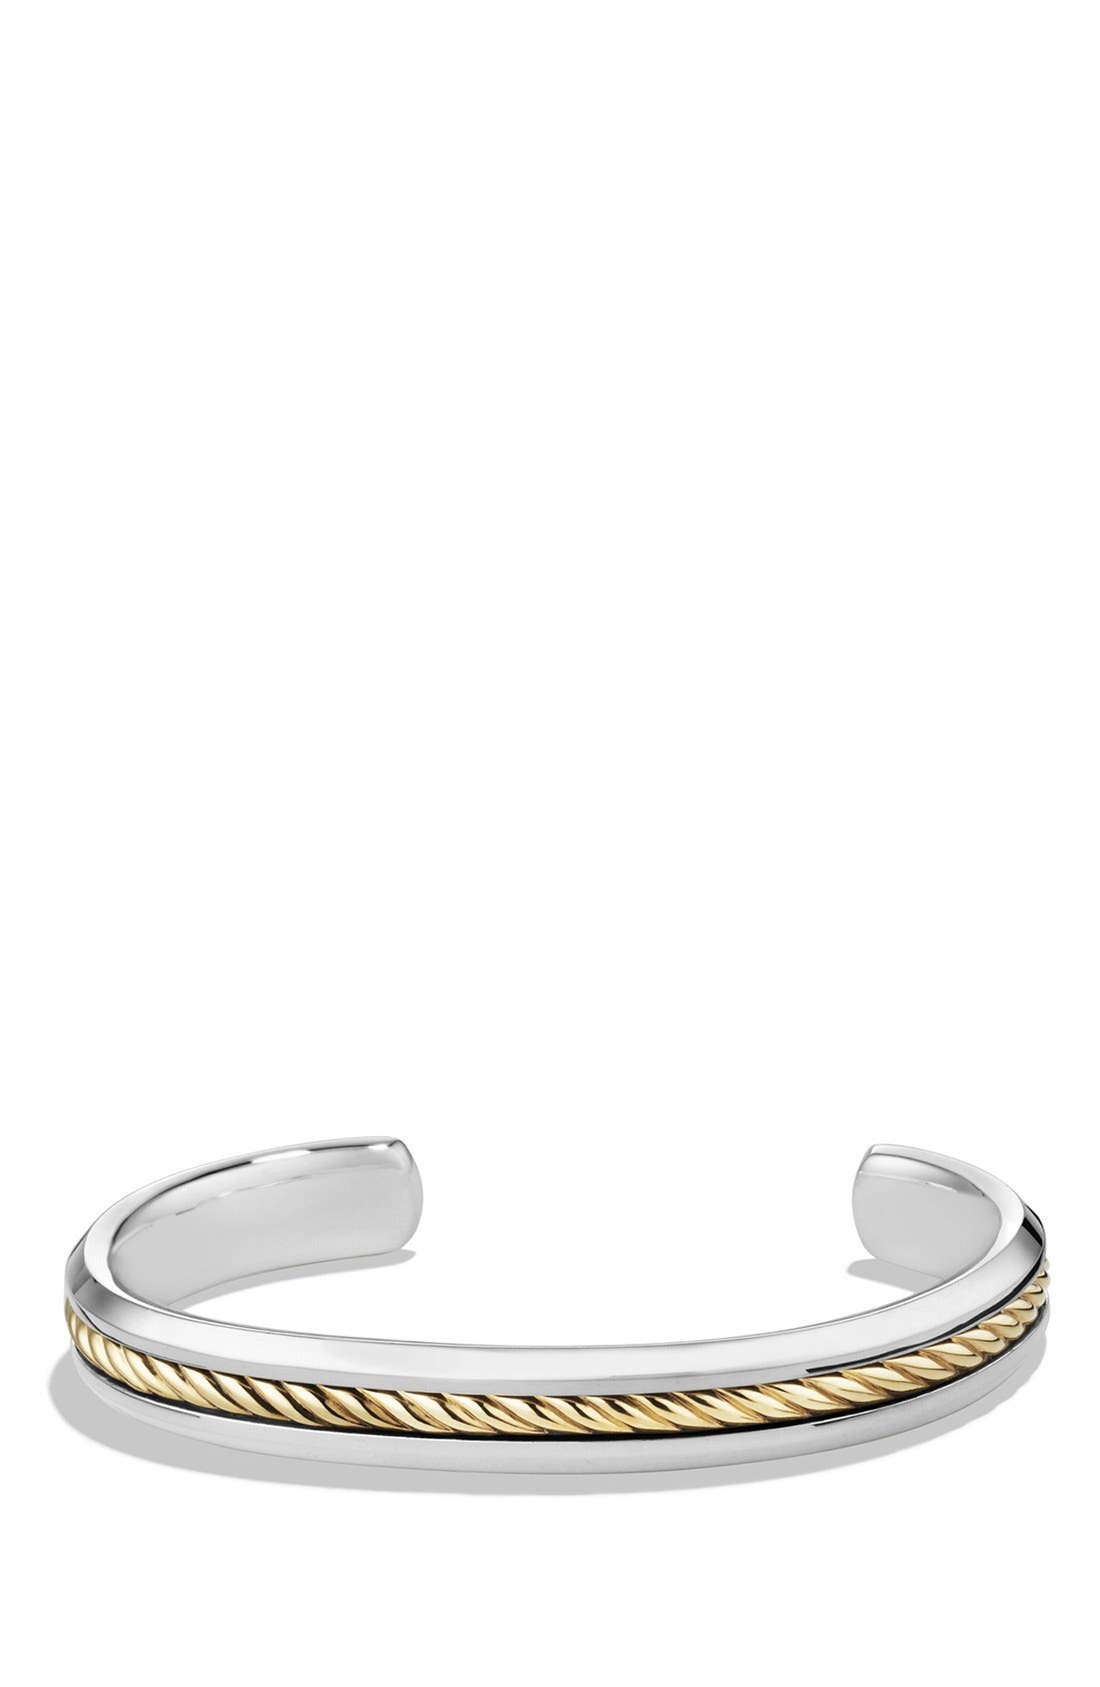 'Cable Classics' Cuff Bracelet with Gold,                             Main thumbnail 1, color,                             Two Tone